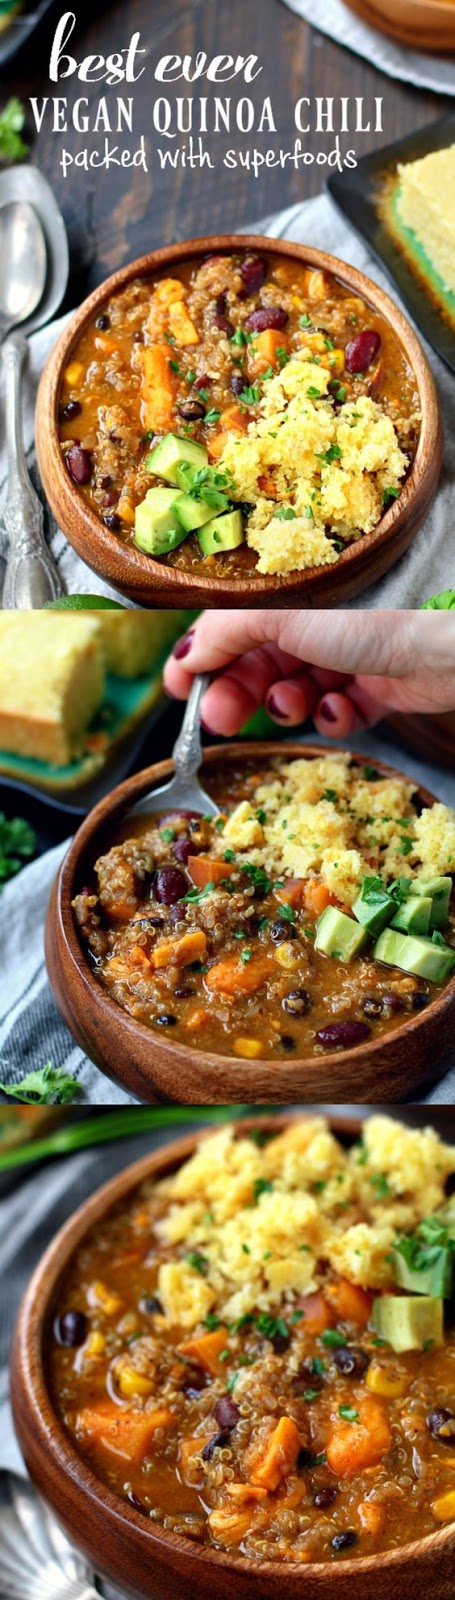 An easy quinoa chili that comes together in less than 1 hour! Easy, delicious, super healthy and so satisfying!